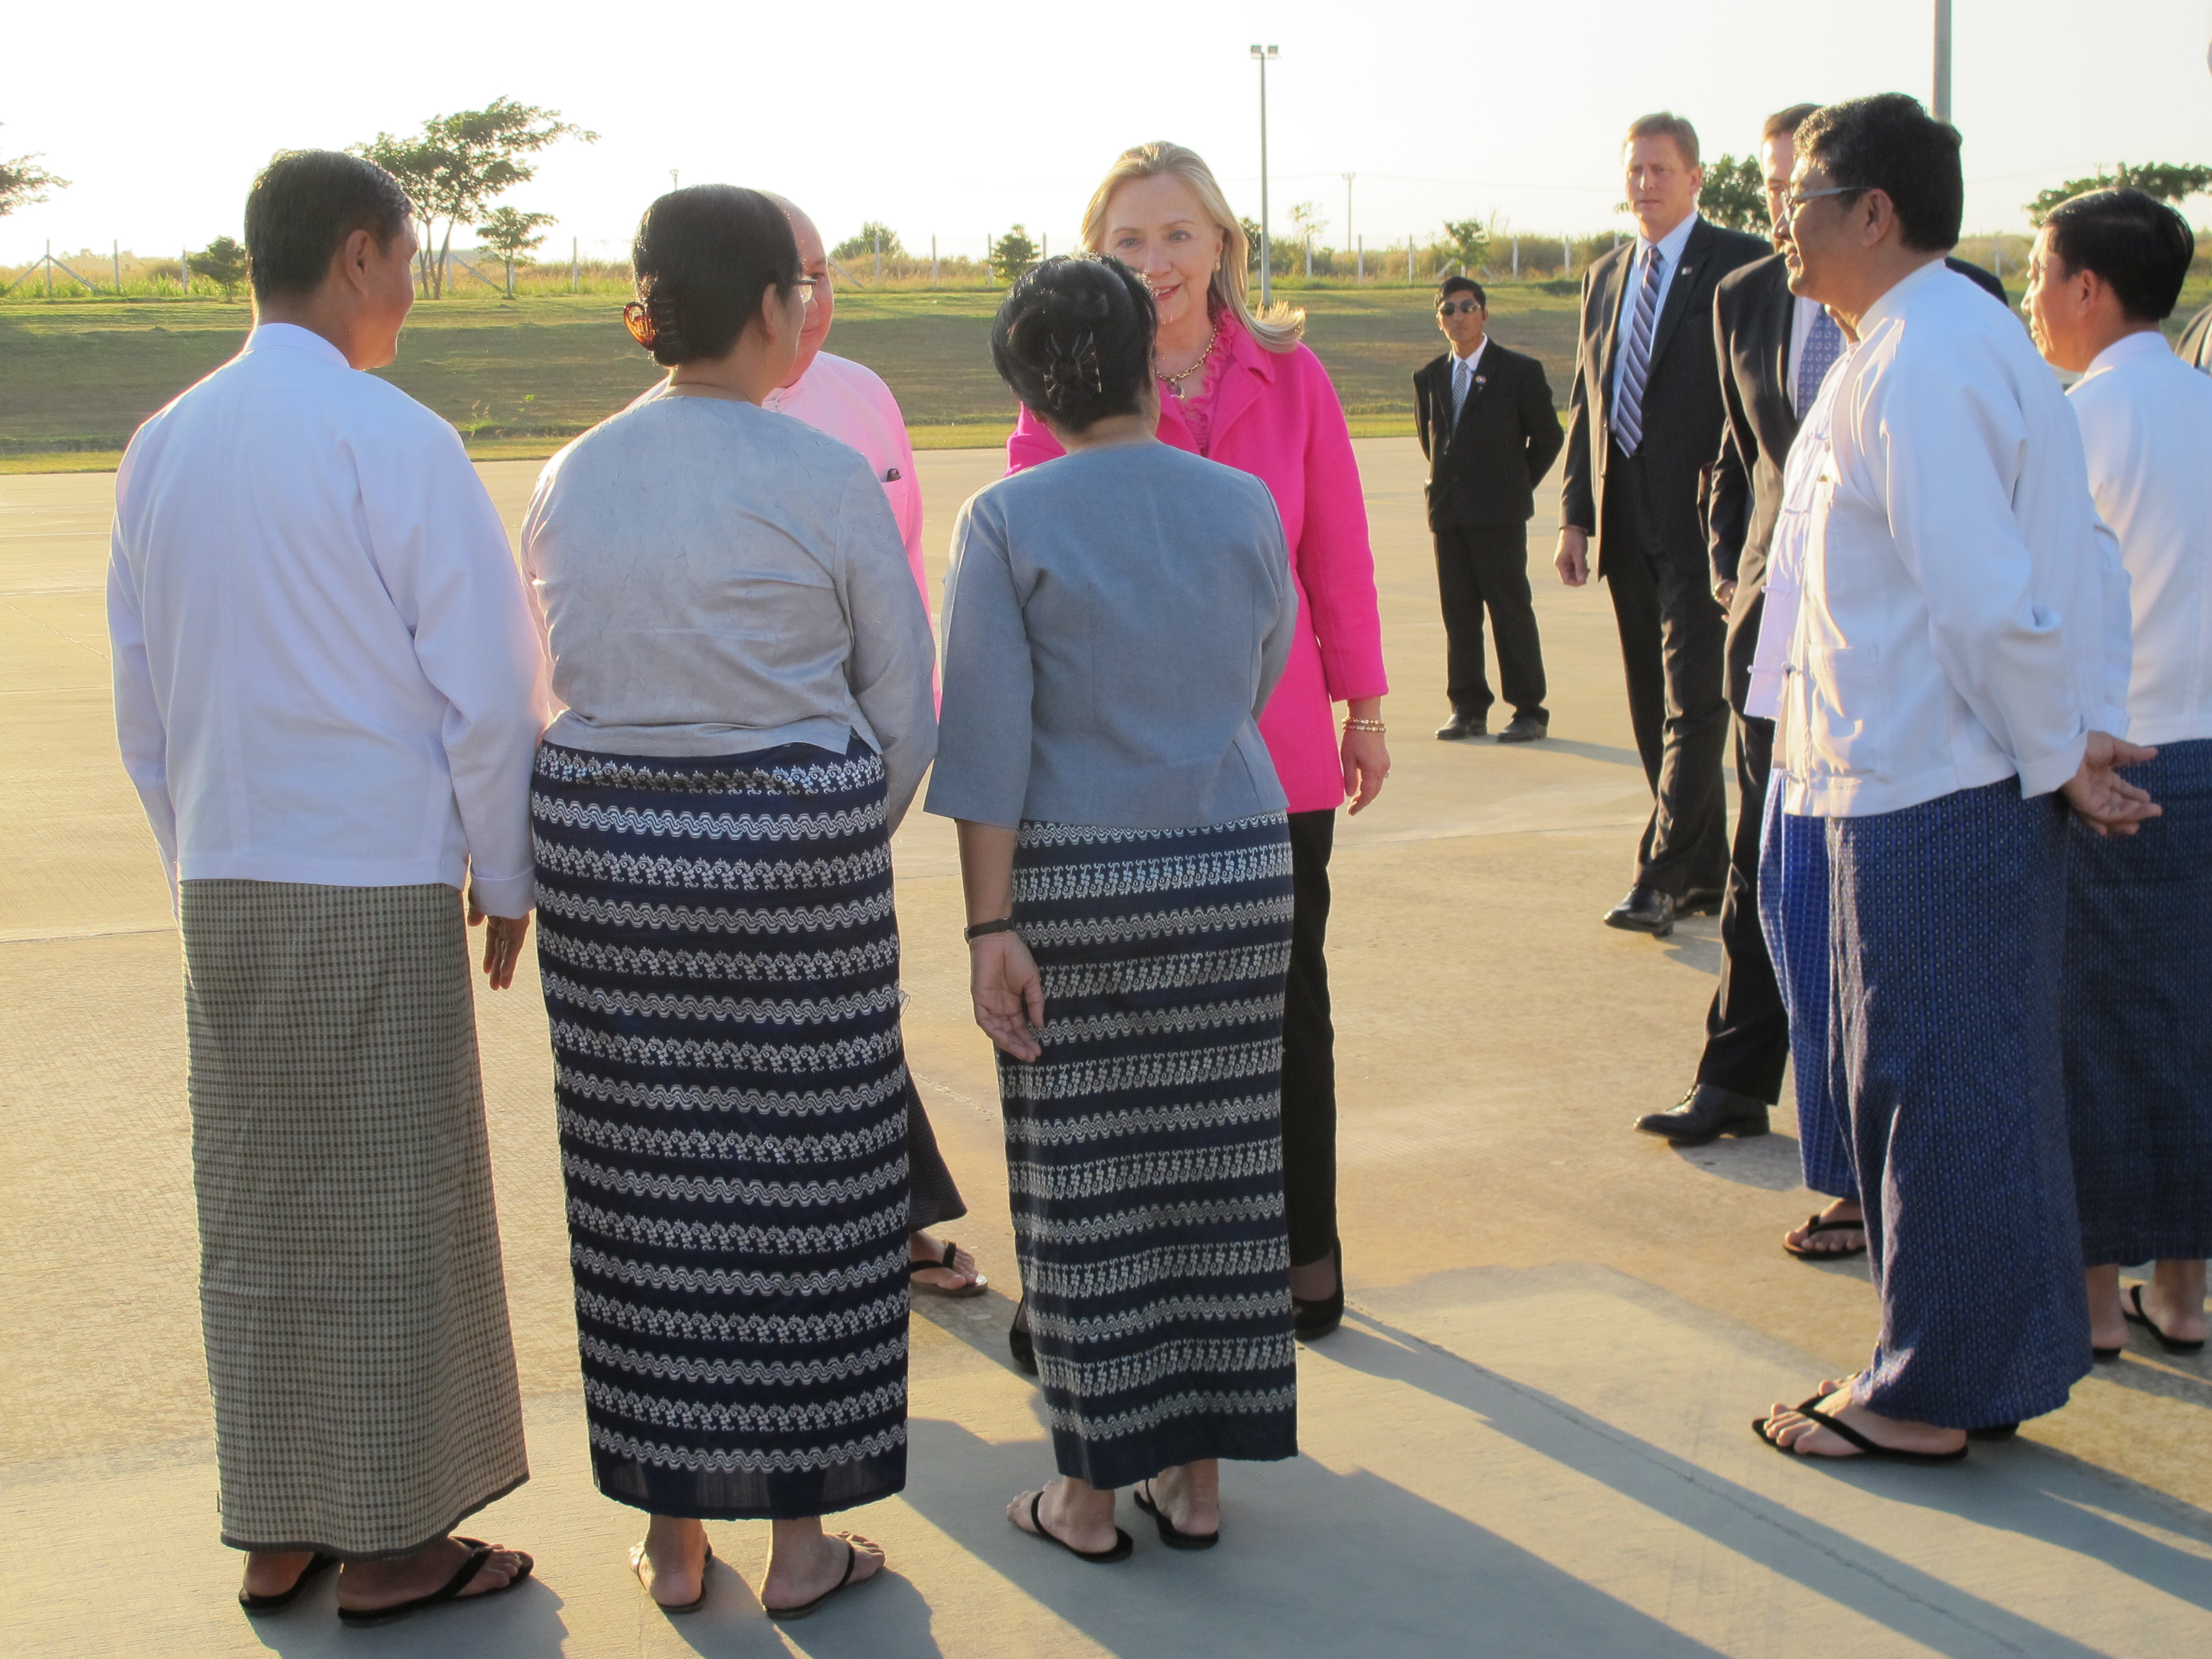 Clinton trip 'tests the waters' in Myanmar